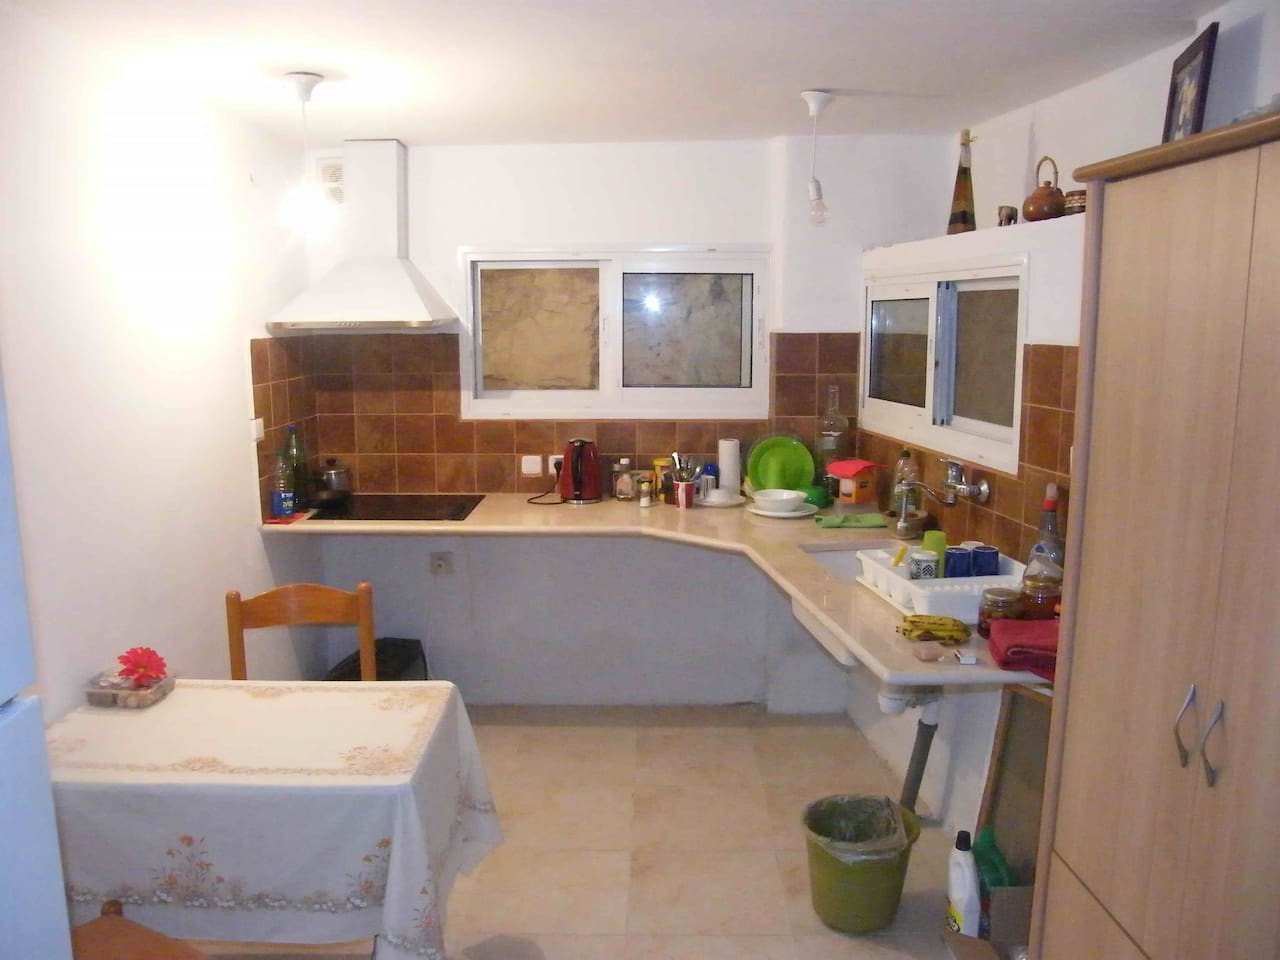 Kitchen (refrigerator is on the left)